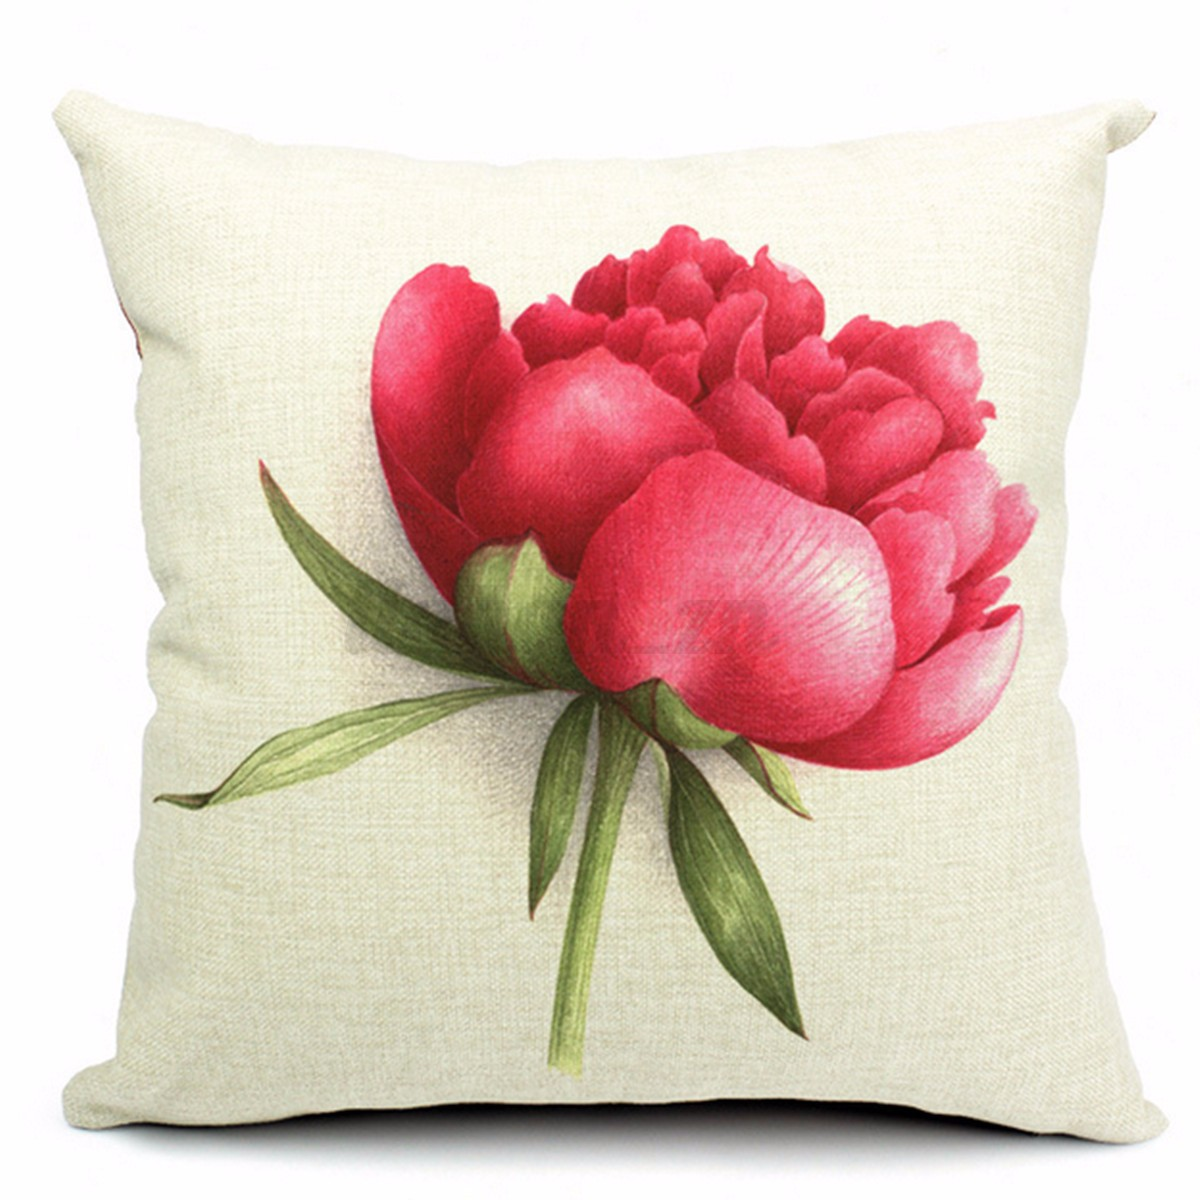 Housse coussin taie d 39 oreiller fleur rose sofa voiture for Housse voiture rose